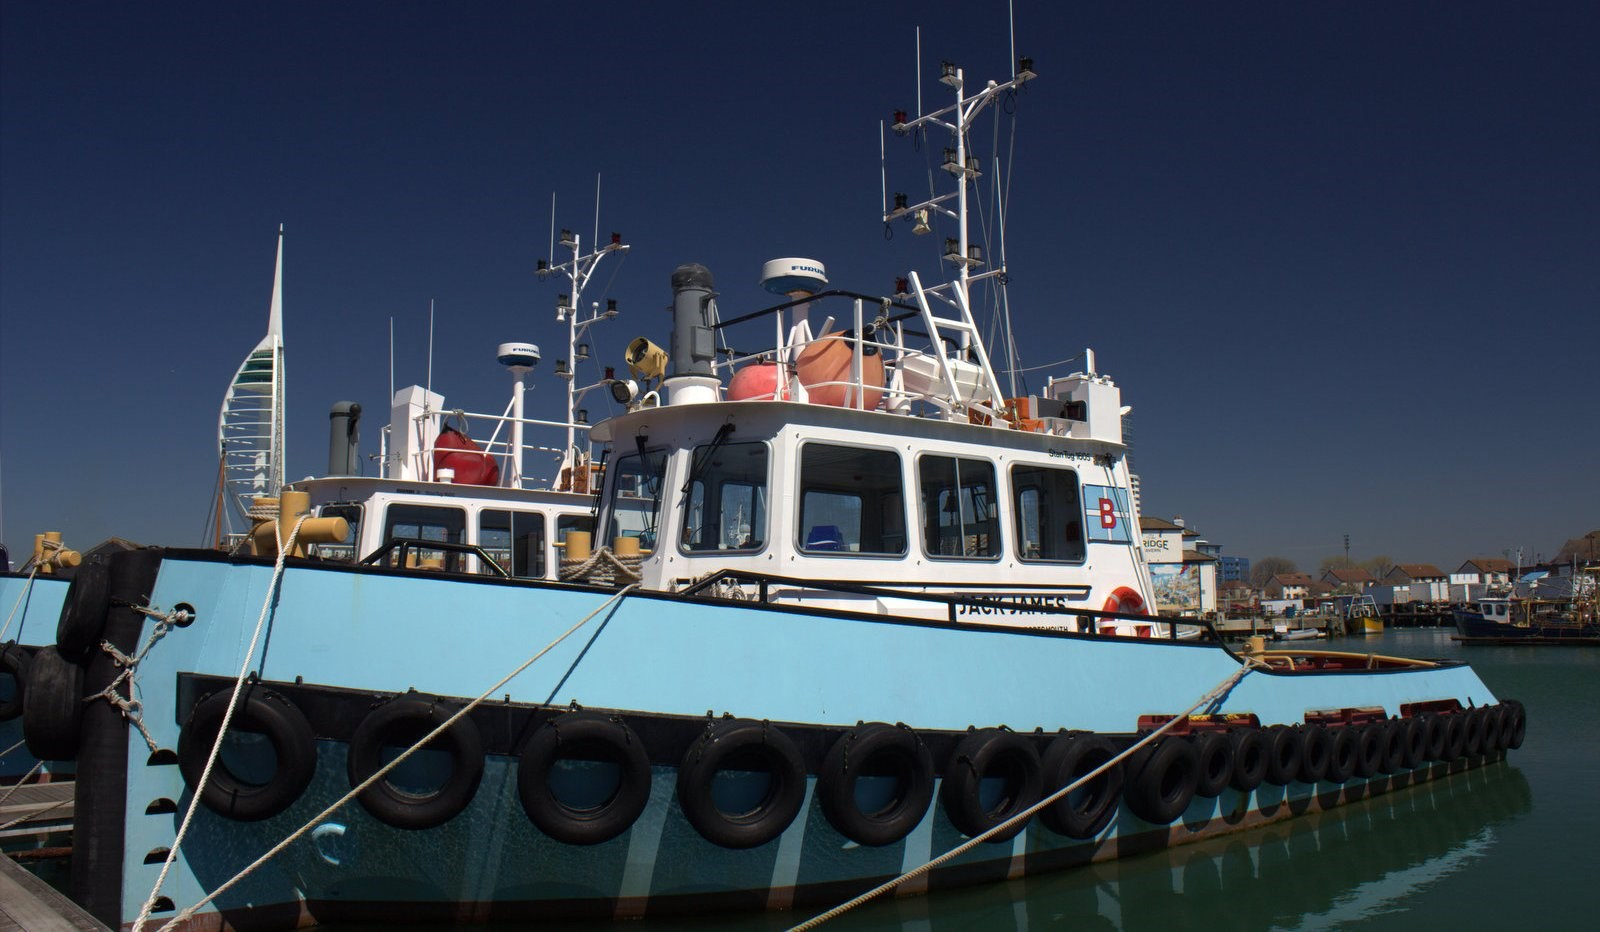 Earlier this year Damen Stan Tug 1605 Jack James, Sale Damen Stan Tug 1605 Jack James owned by Butcher & Sons